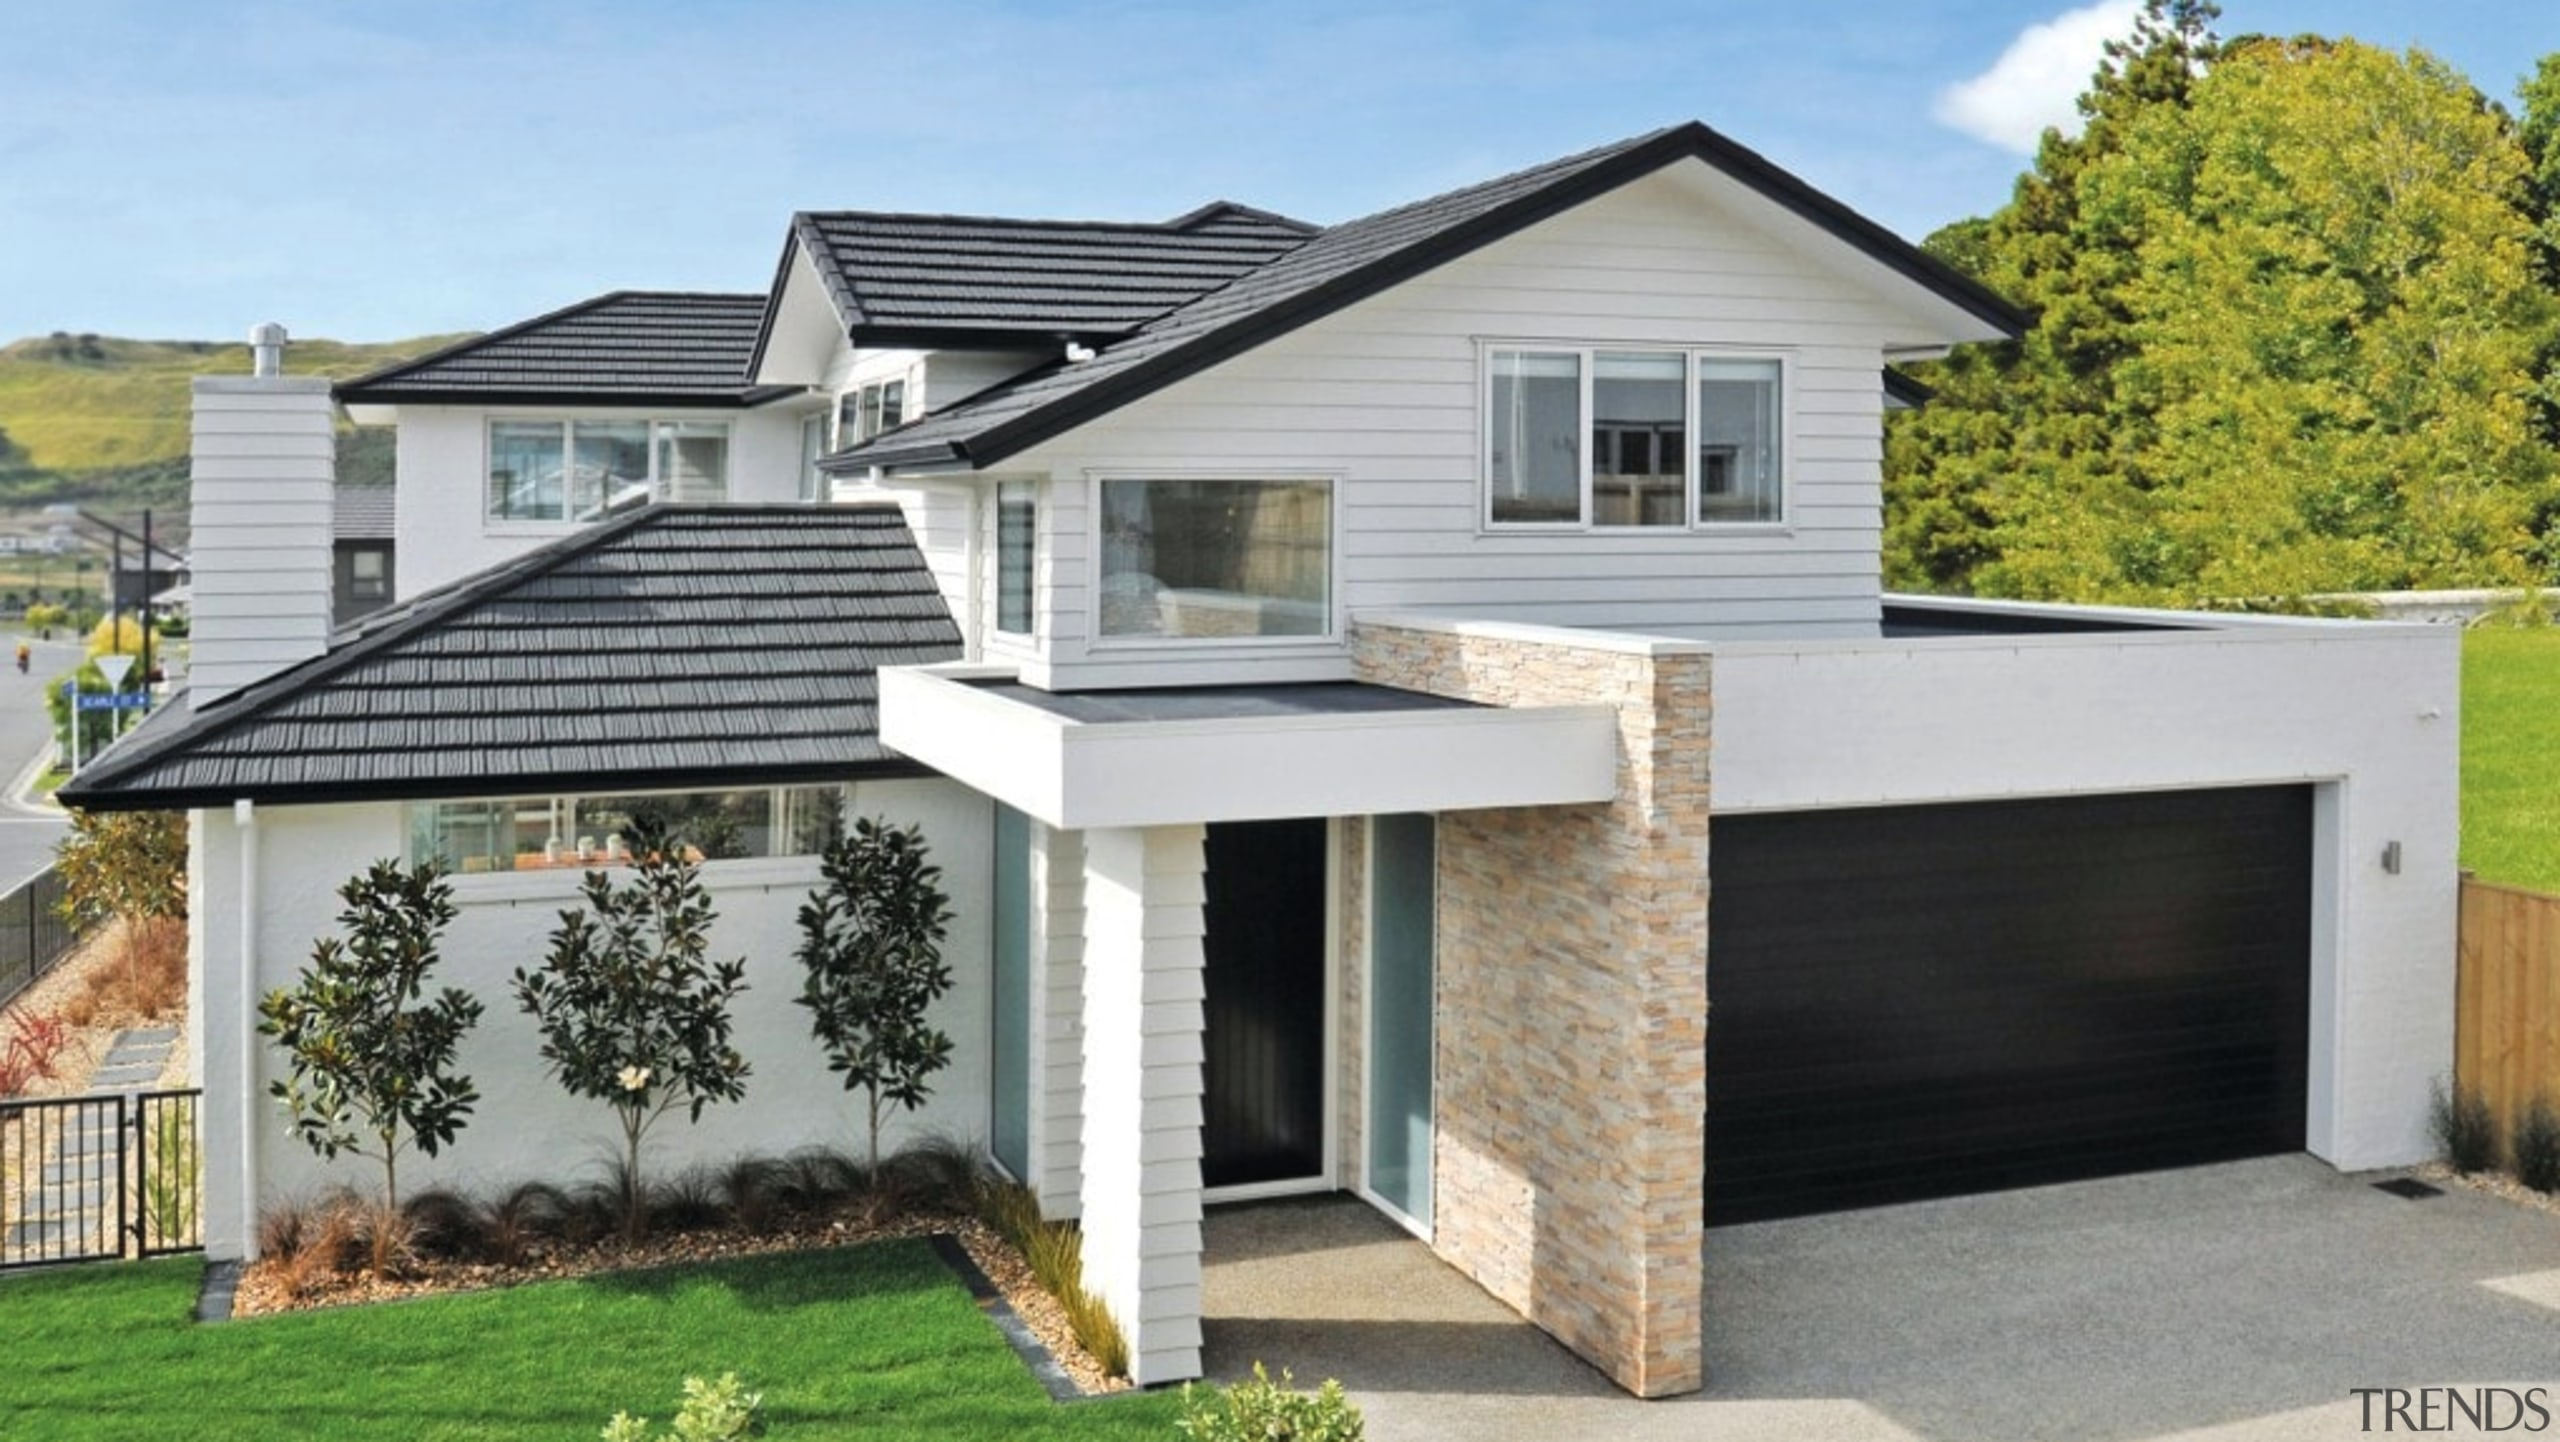 Shake - elevation | facade | home | elevation, facade, home, house, property, real estate, residential area, roof, siding, gray